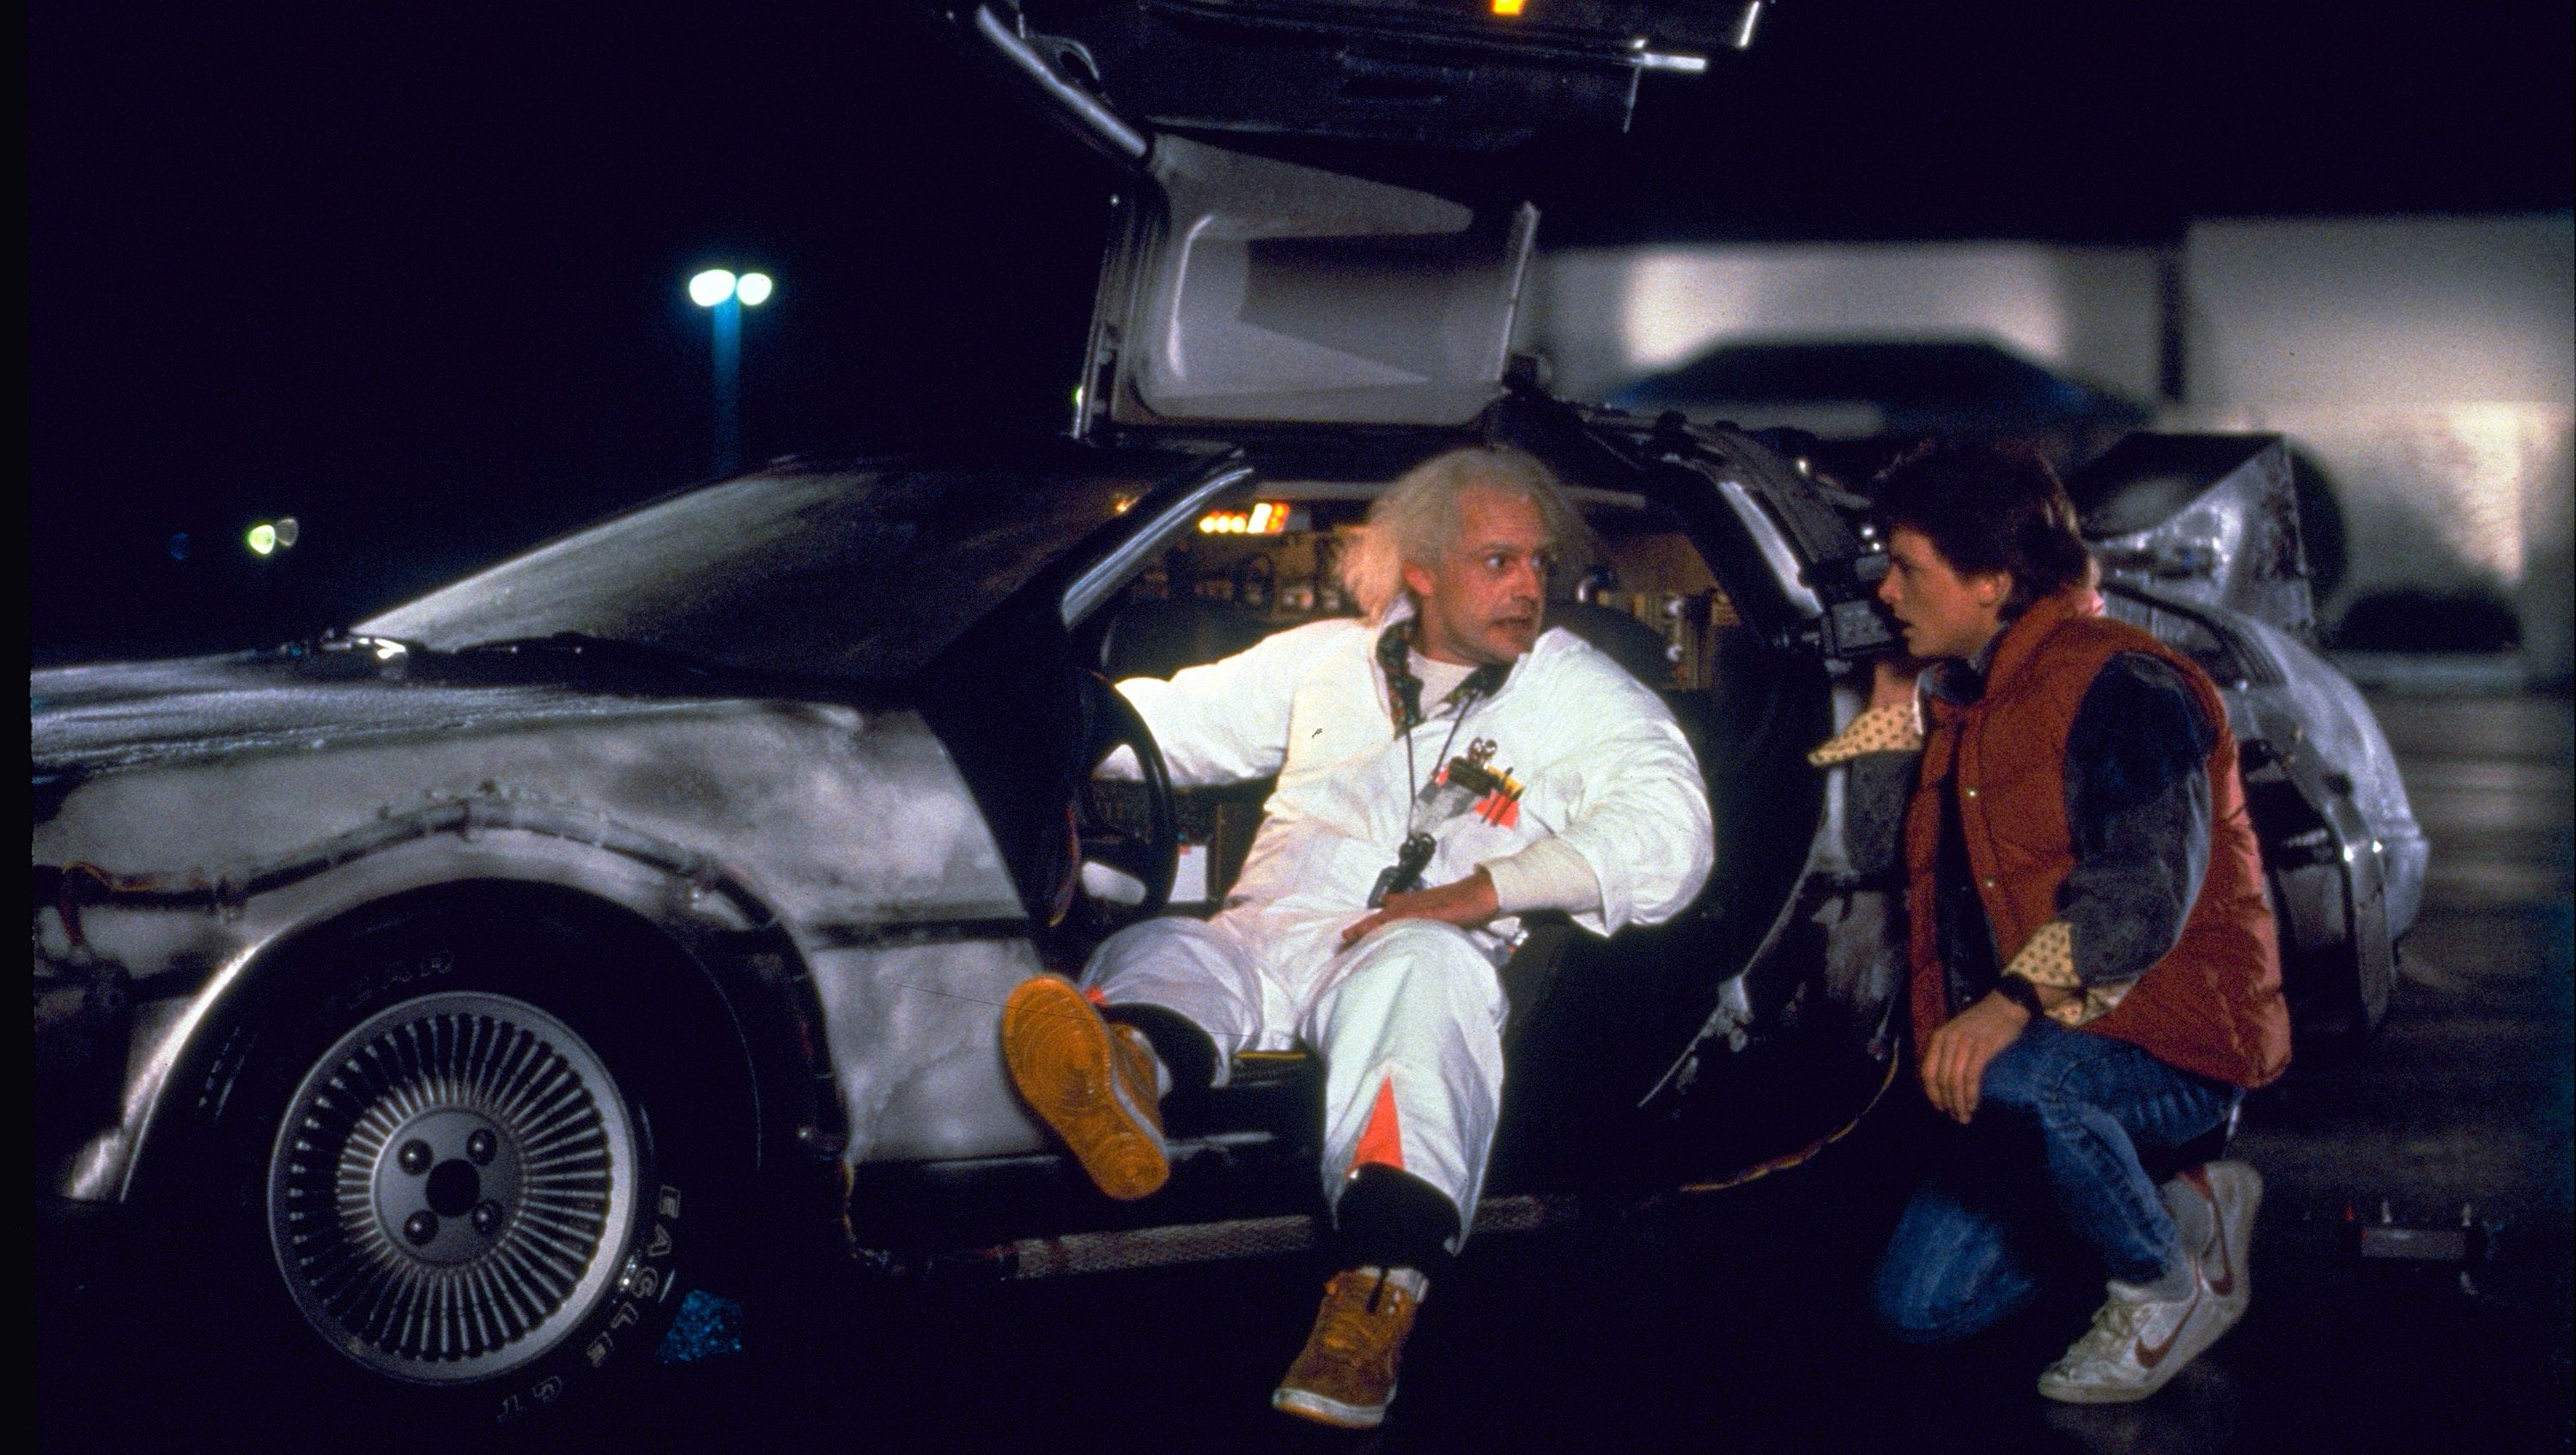 15 things you probably didn't know about 'Back to the Future'